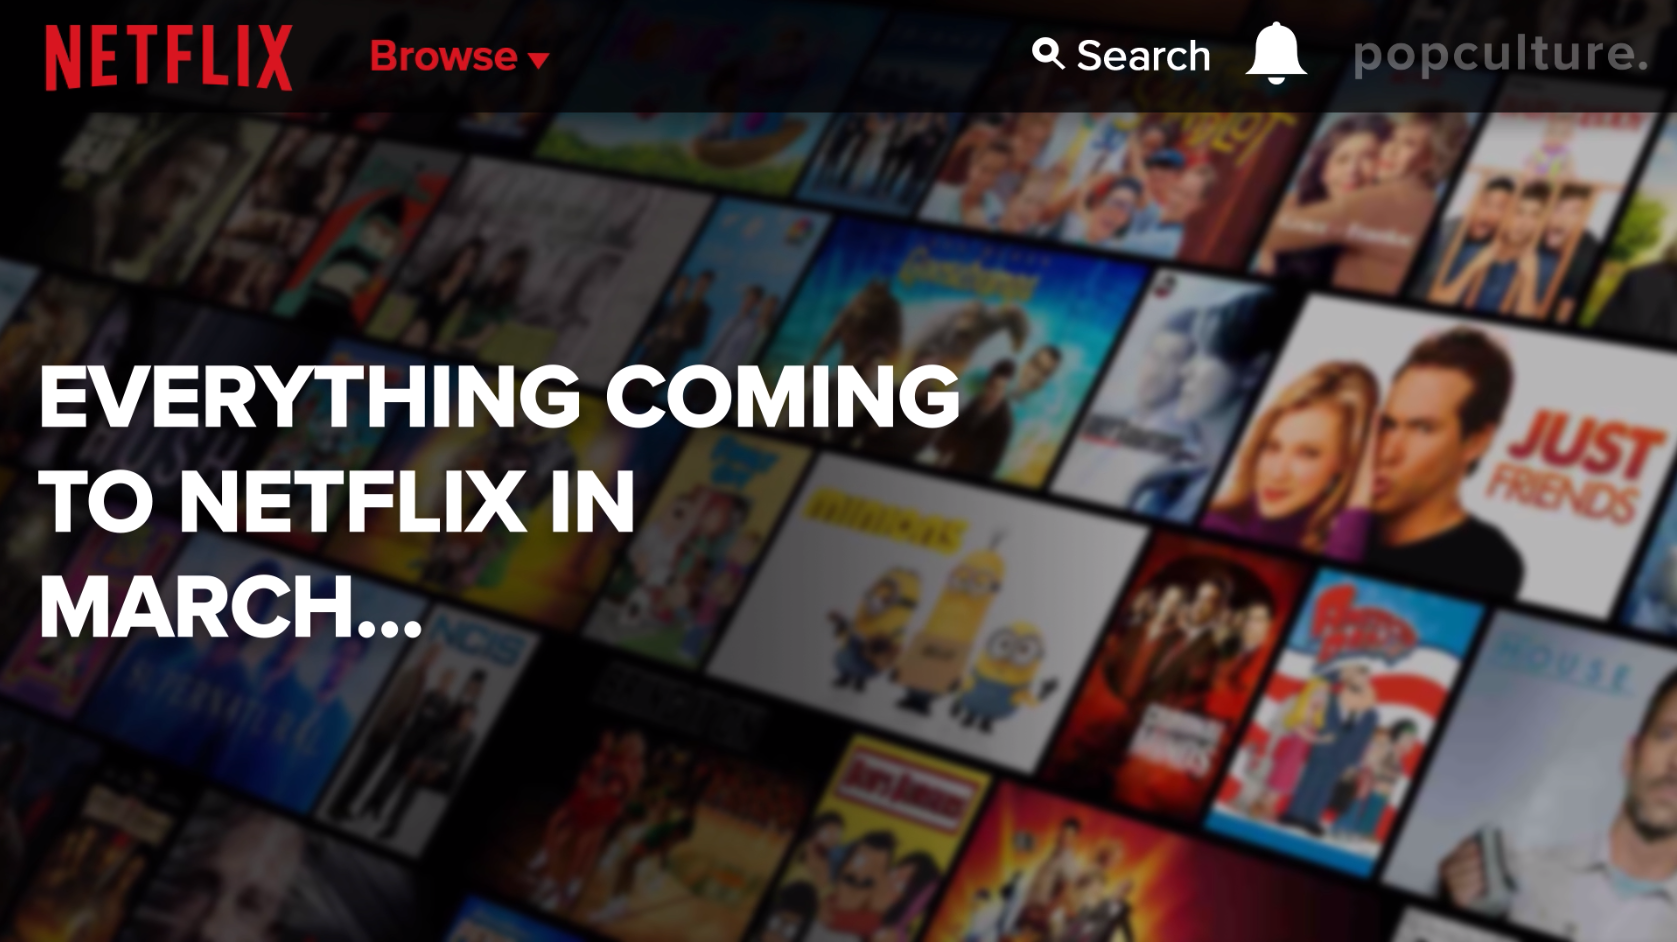 Coming to Netflix - March 2020 screen capture